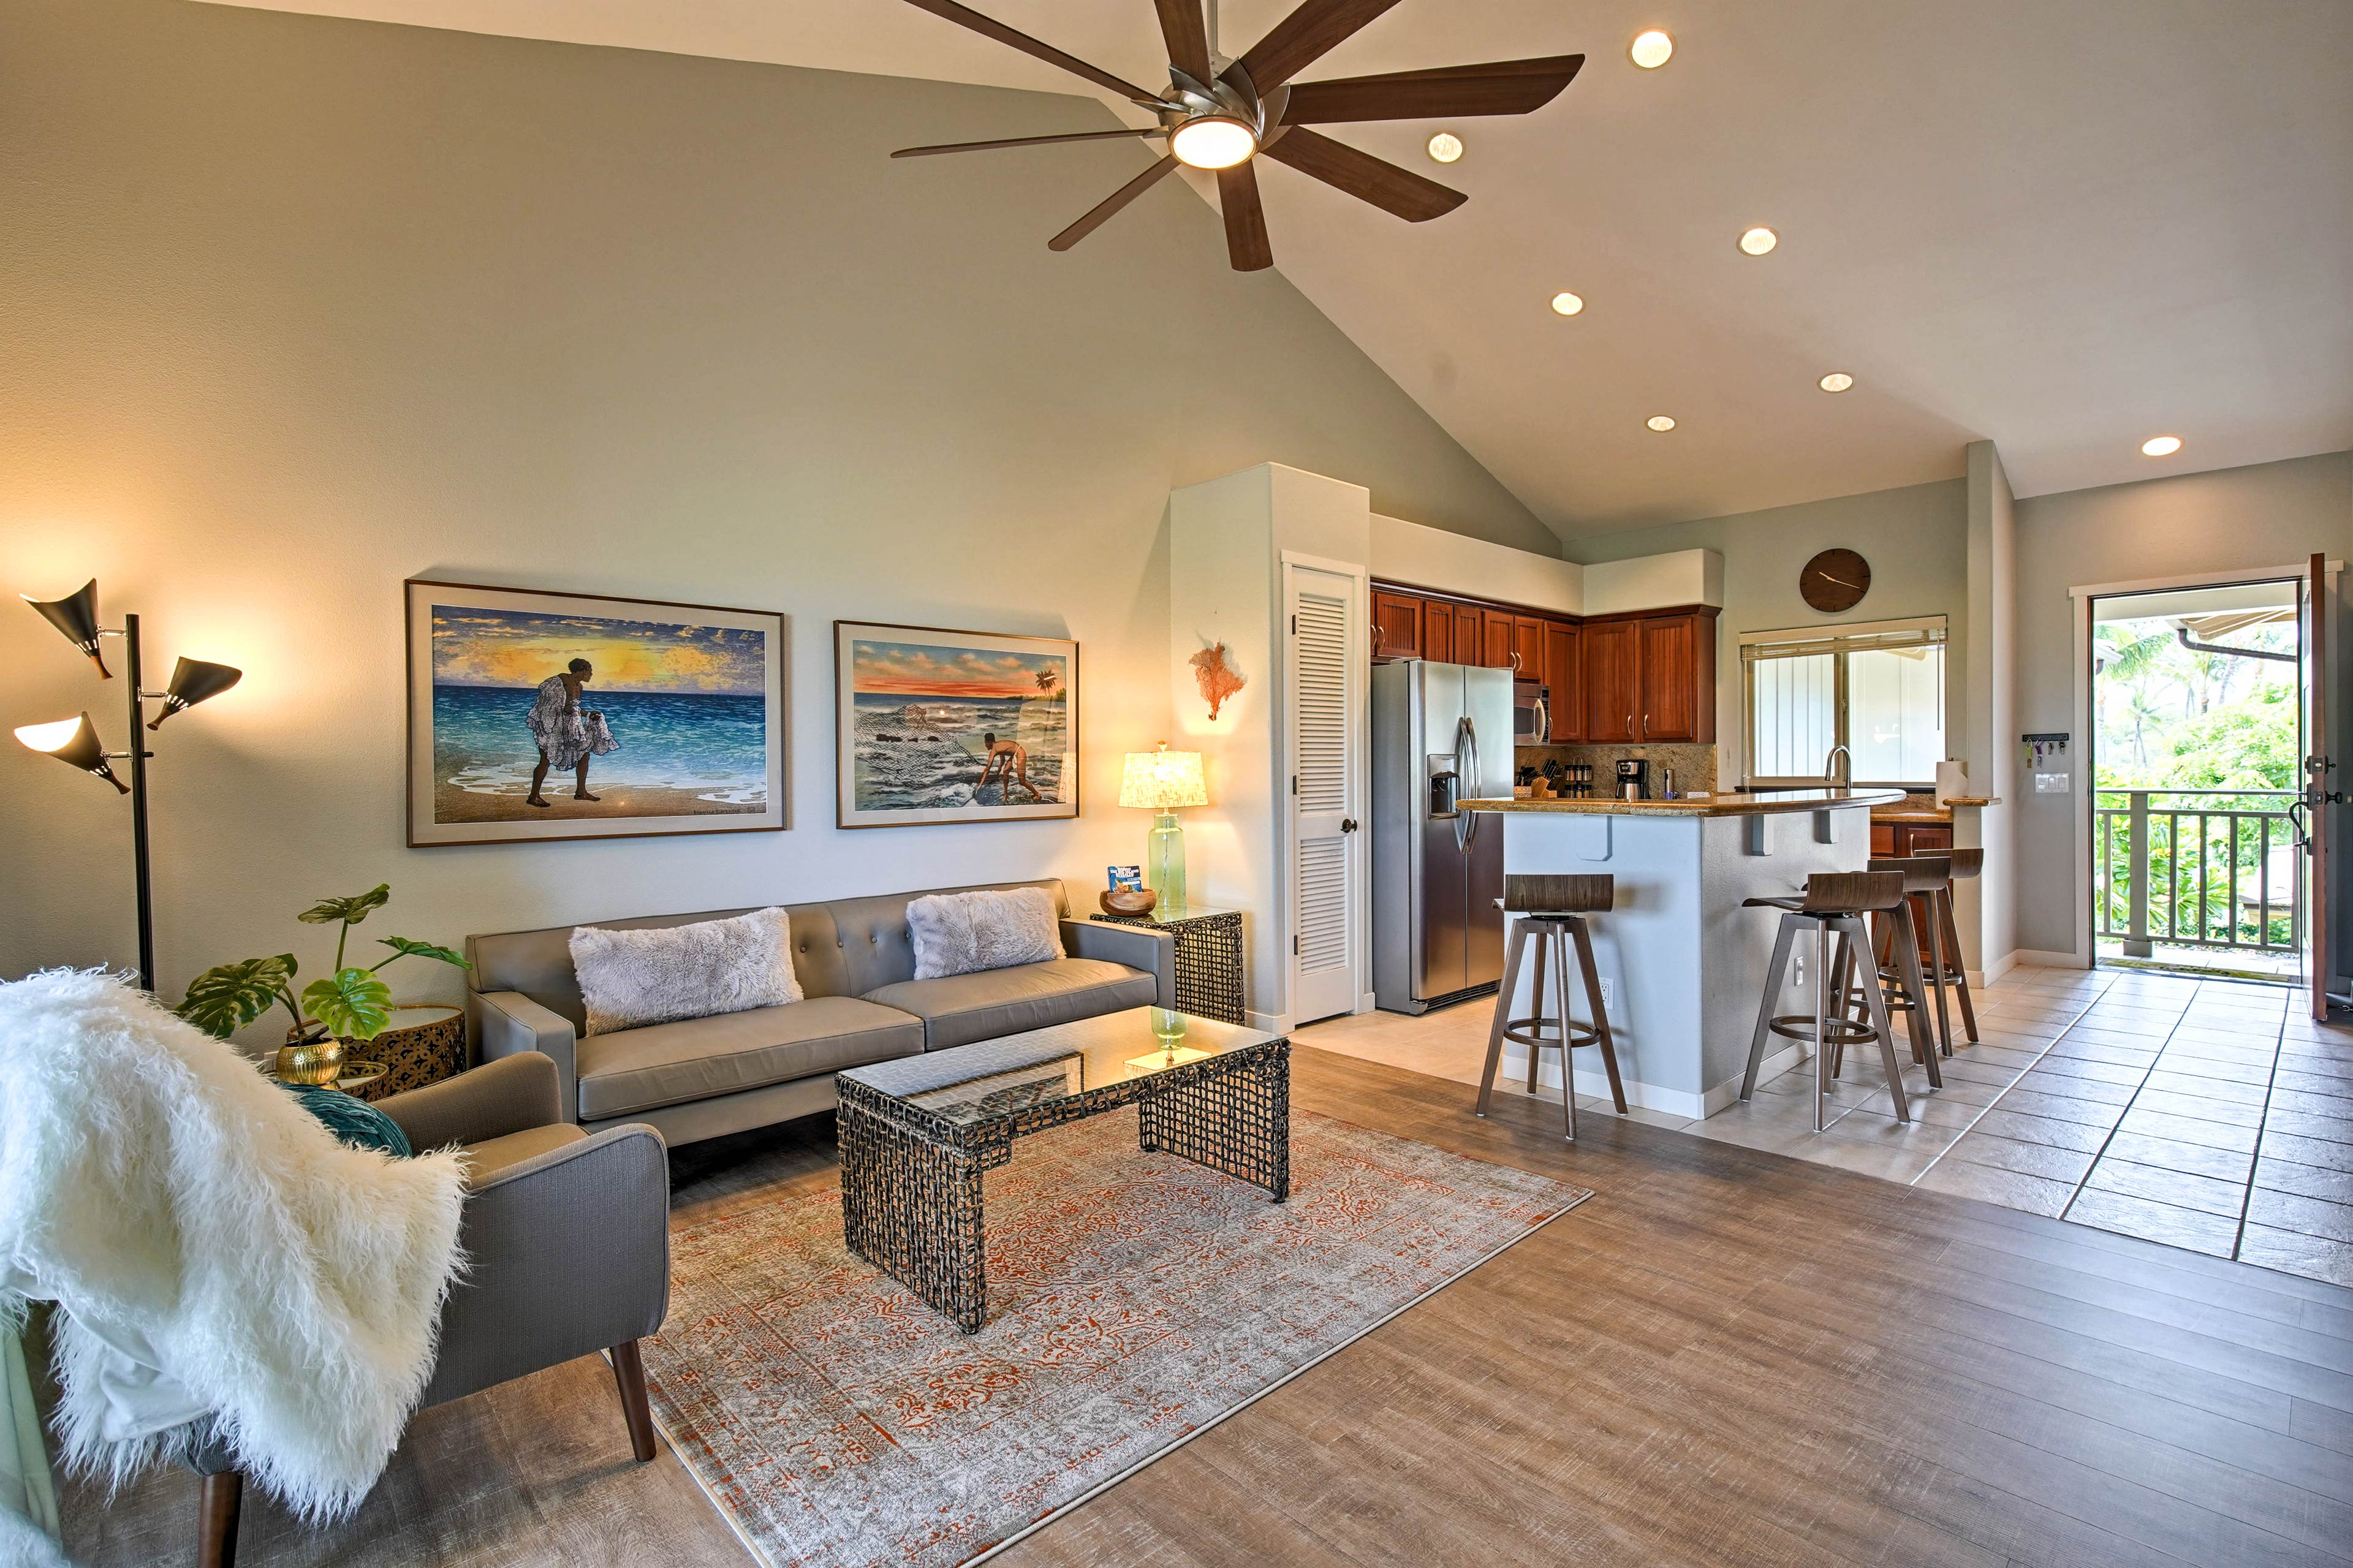 Step inside the 3-bed, 2-bath, 1,200-square-foot condo and get ready for fun!